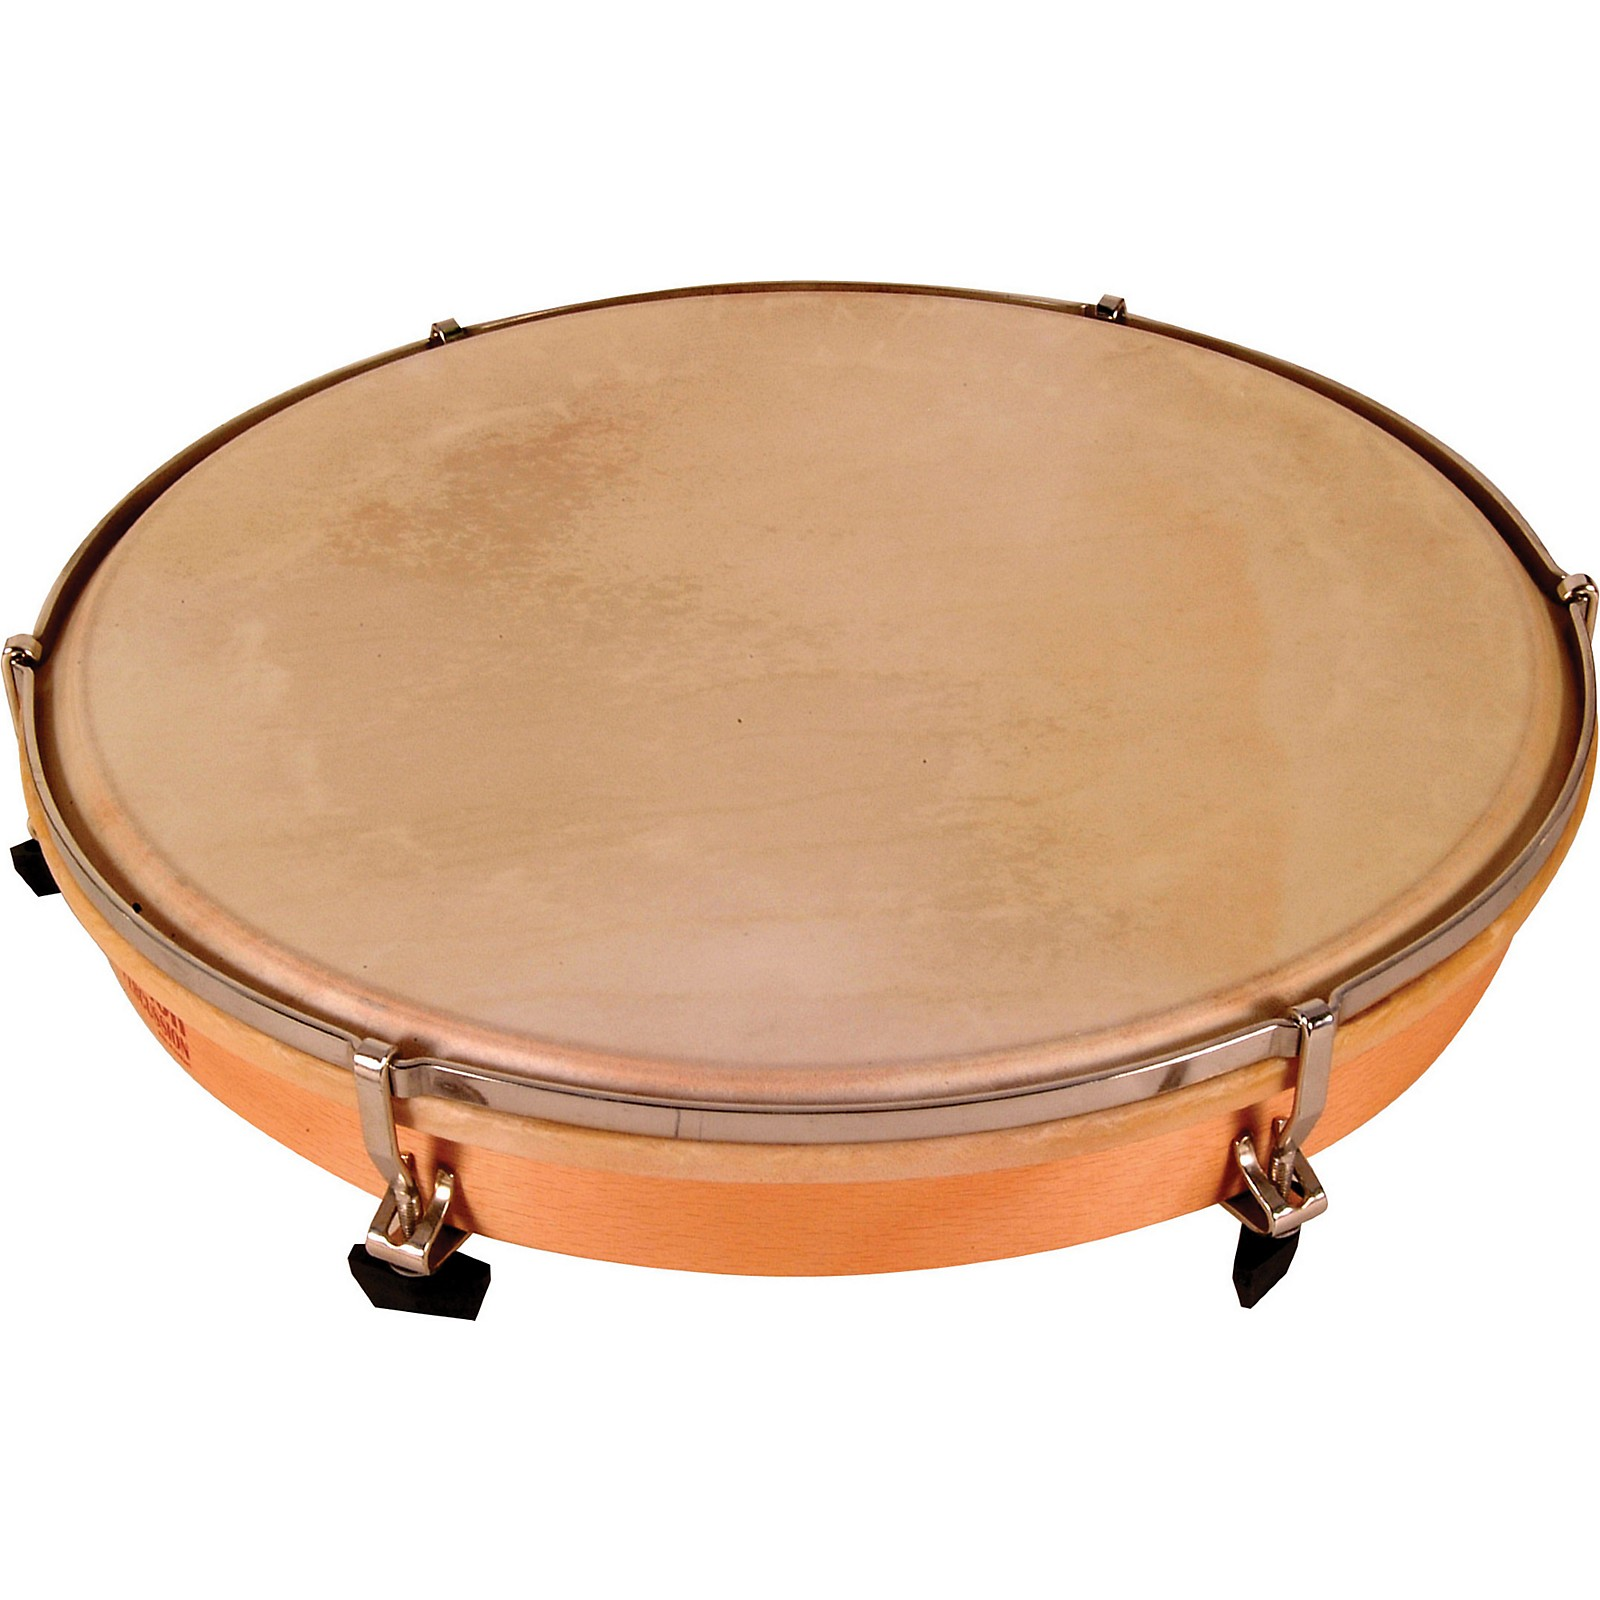 Sonor Orff Hand Drums